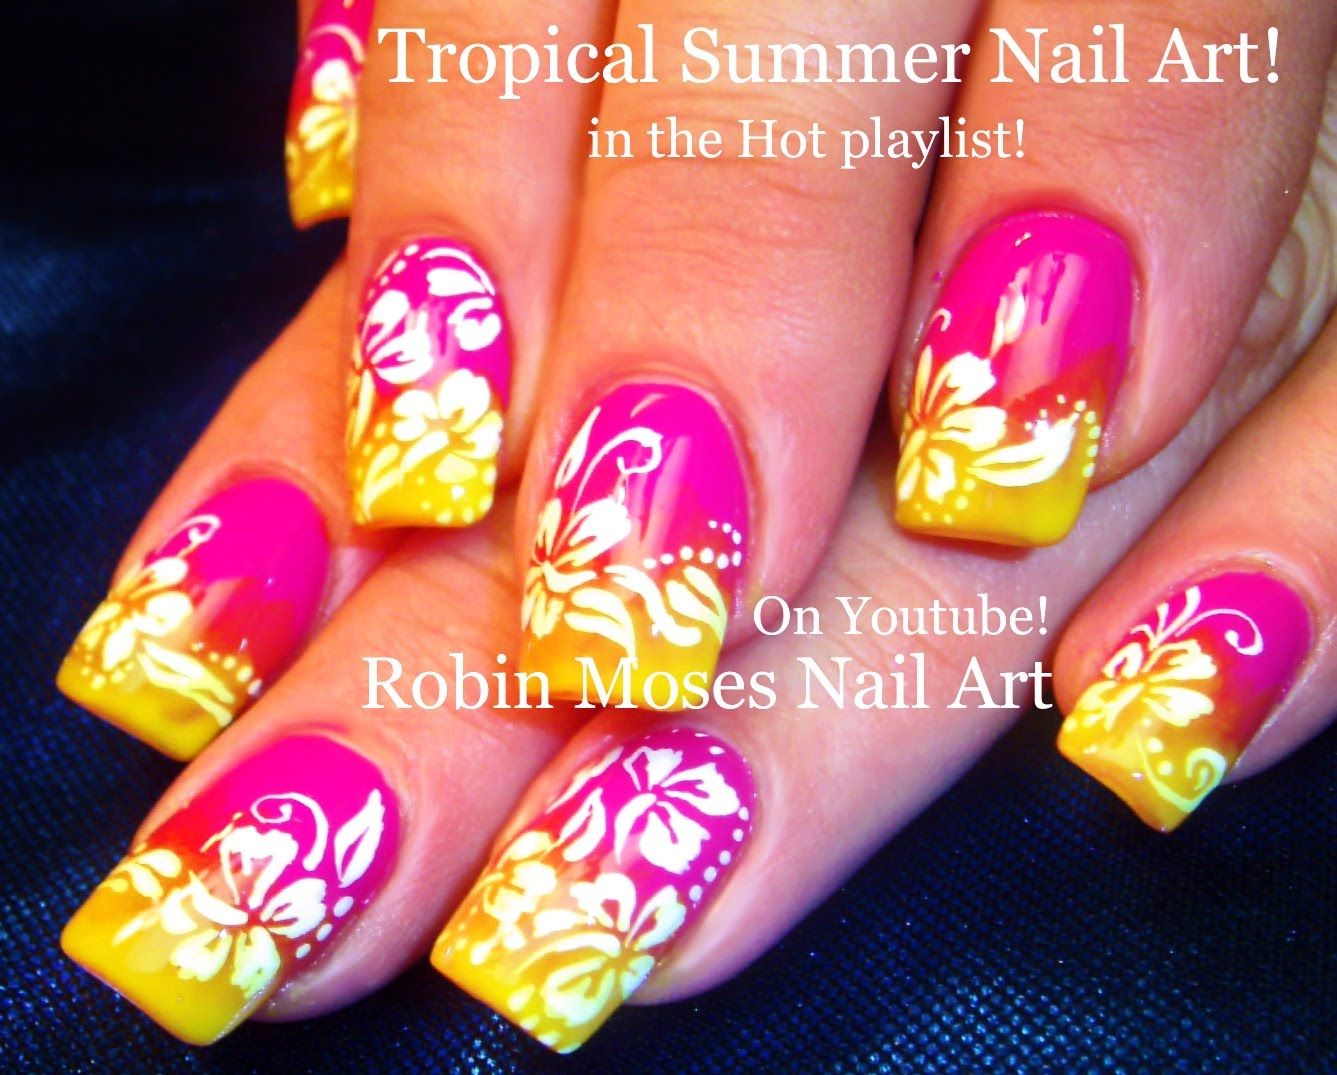 Fine Best Nail Polish For Weak Brittle Nails Small Nail Art Magazine Rectangular Nail Fungus Treatment Over The Counter Latest Simple Nail Art Designs Young Removing Nail Polish From Jeans SoftNail Art Classes 1000  Images About FLOWERS Nail Art Pictures With Tutorials On ..